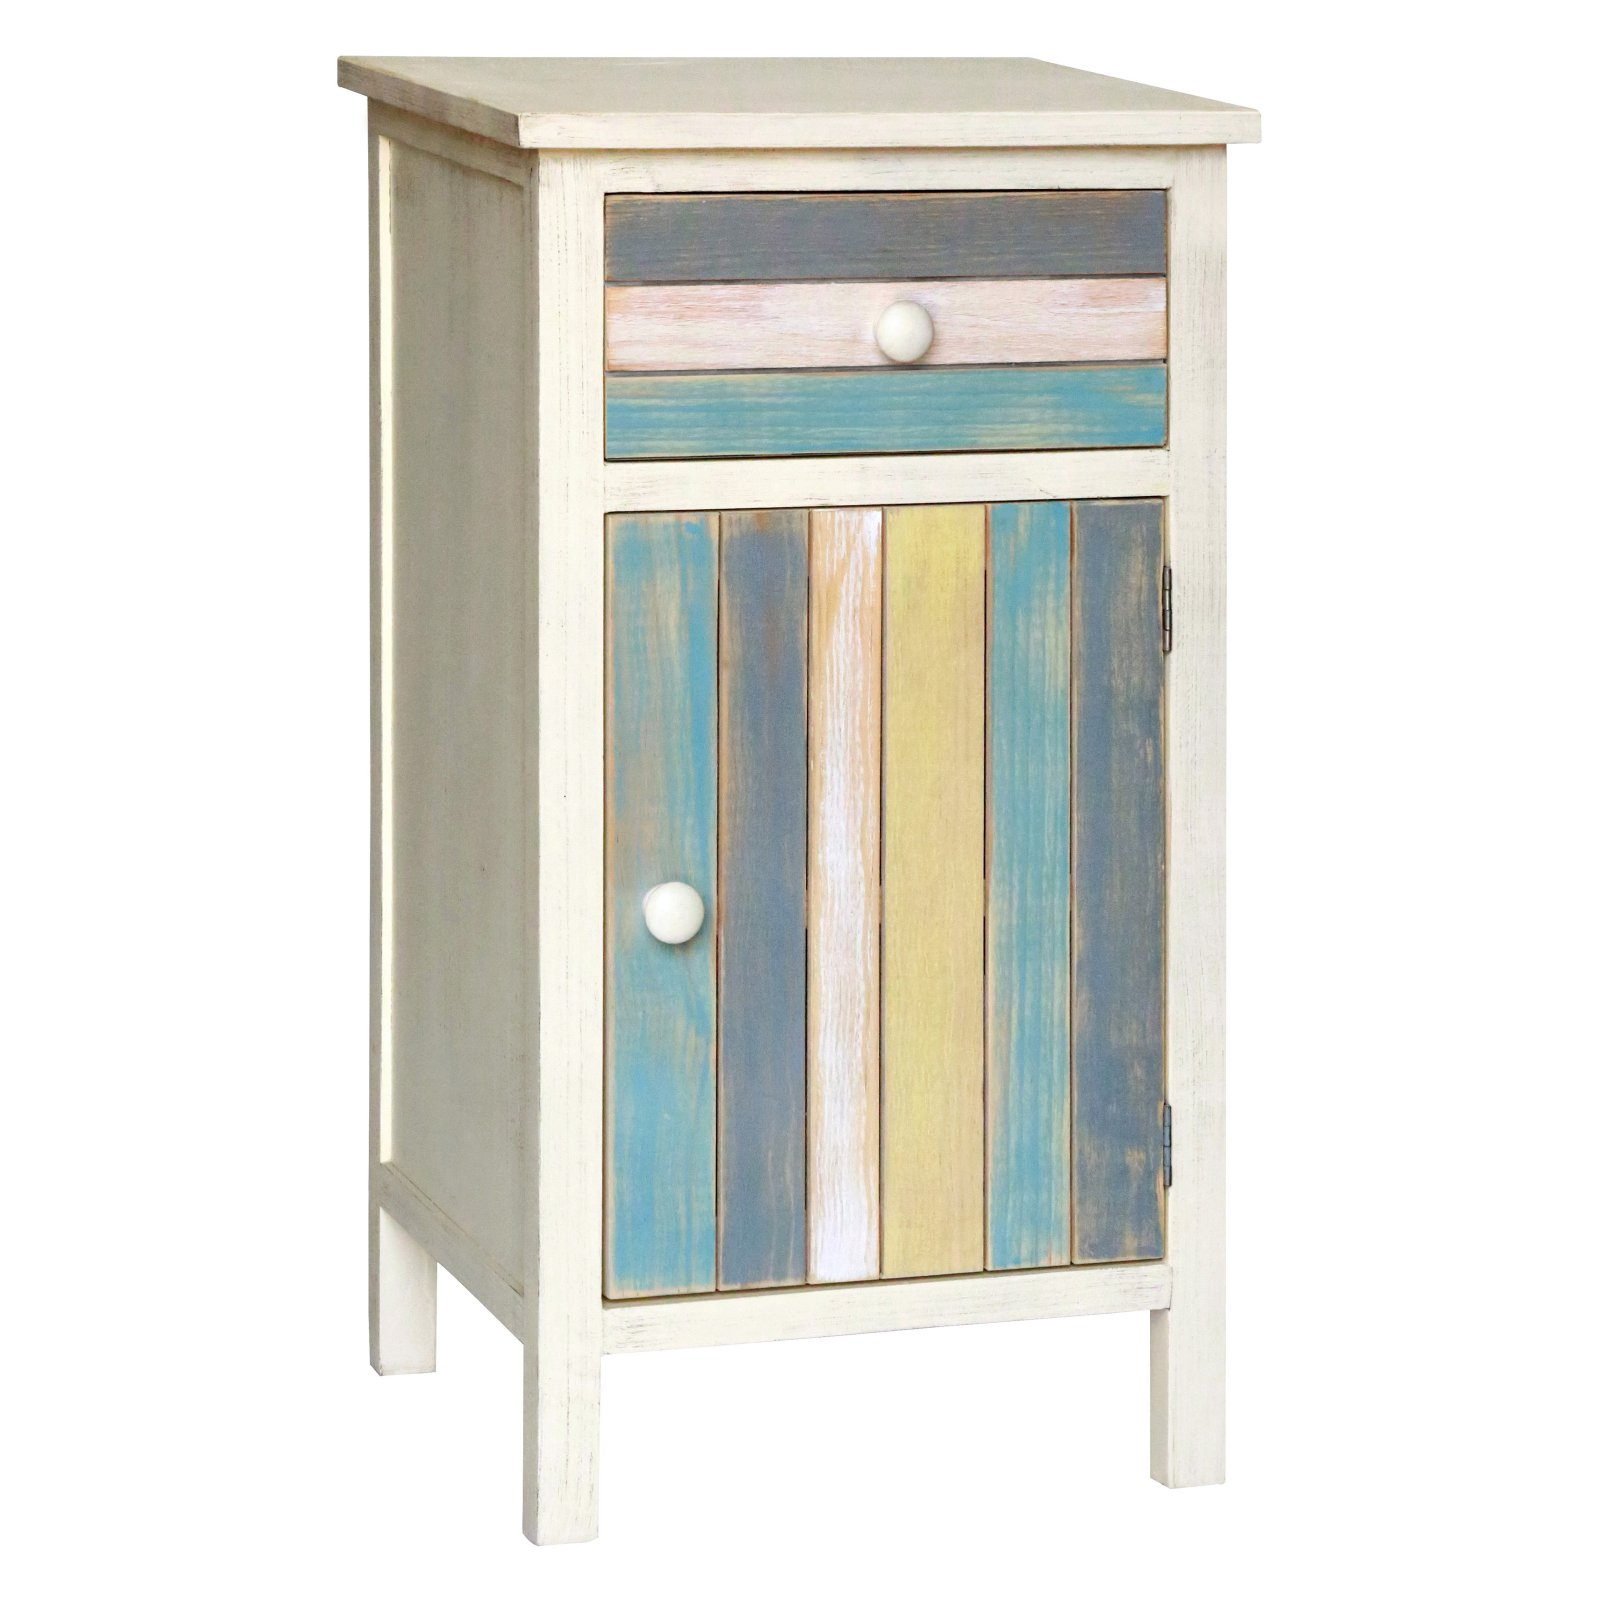 Gallerie Decor Seaside One Door Cabinet with Single Drawer